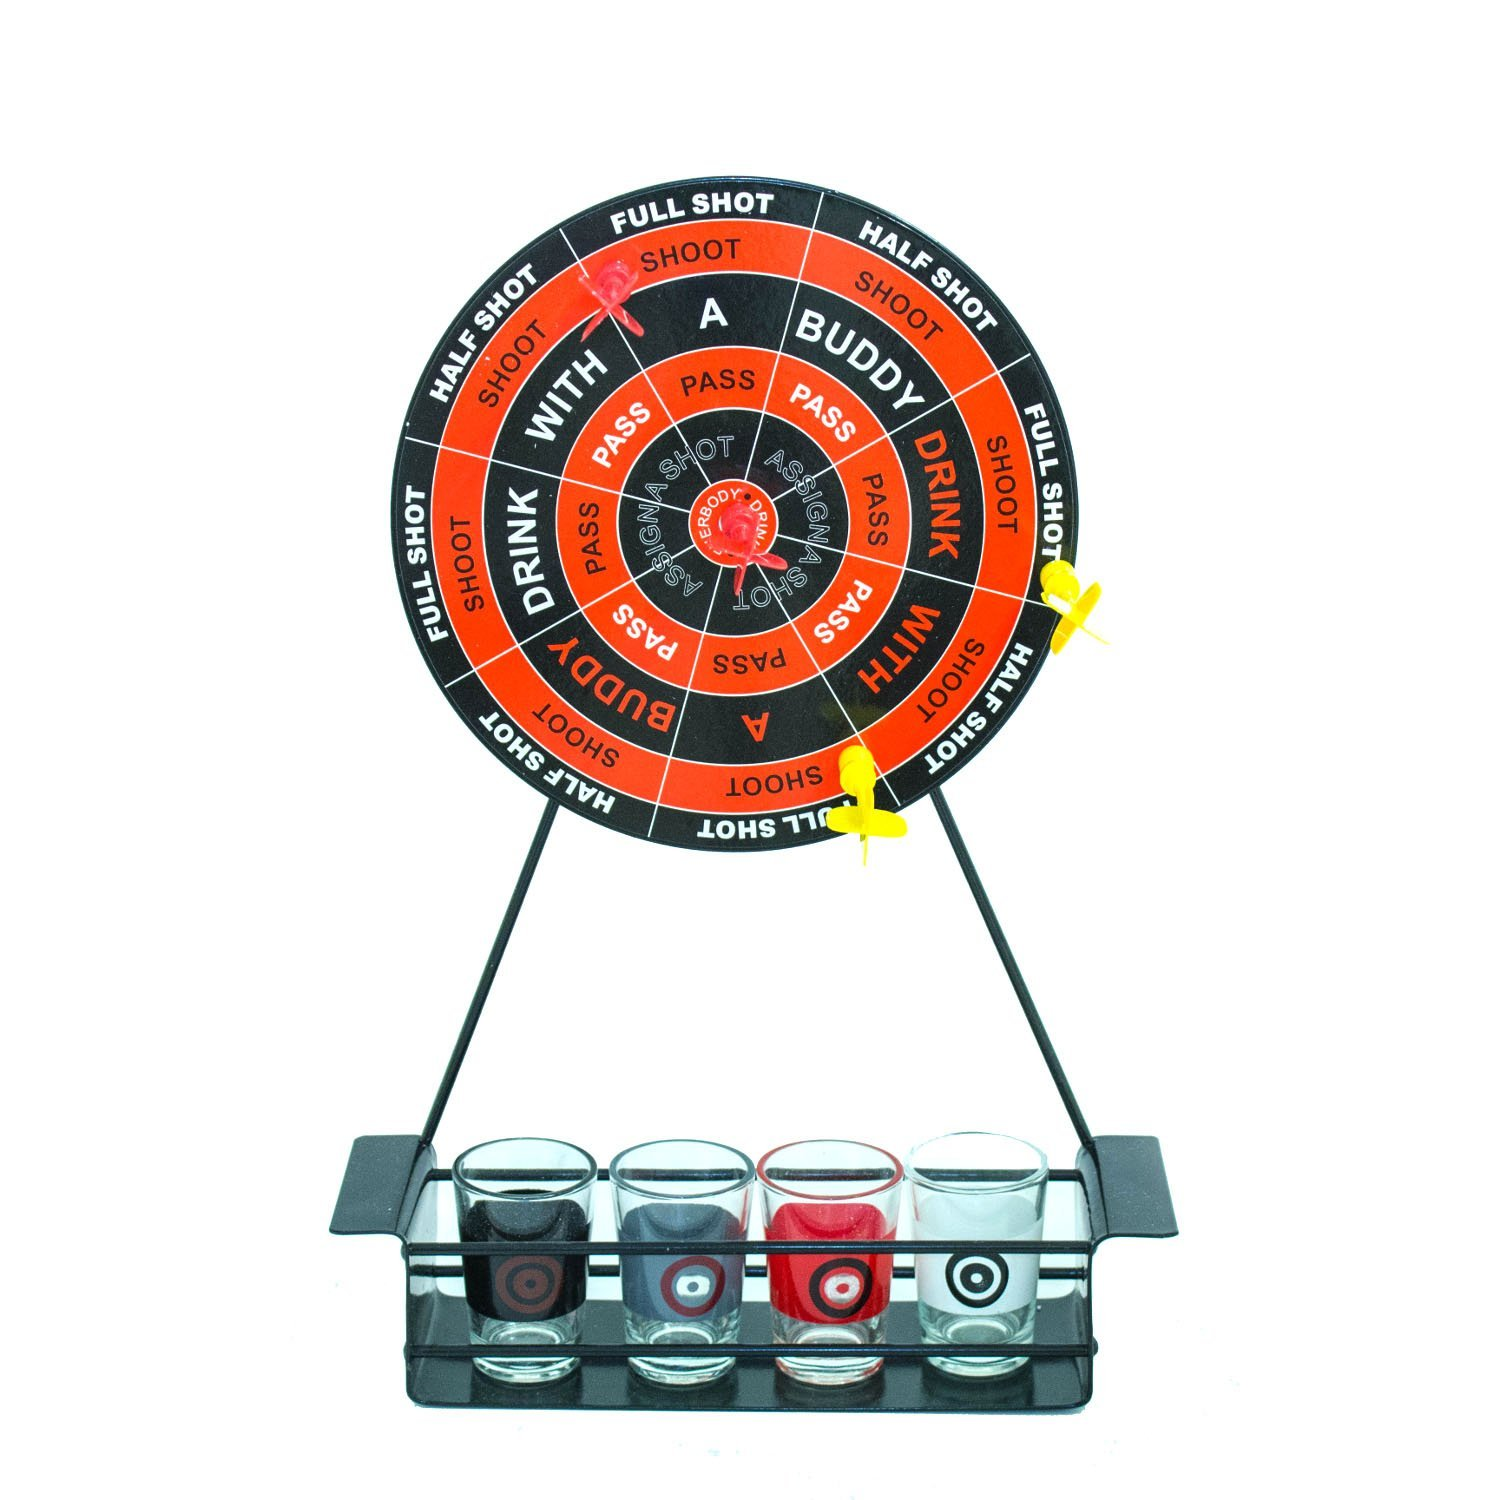 Ukayed Down in One Darts Adult Drinking Game with Mini Dart Board and Shot Glasses Darts Drinking Game 617006